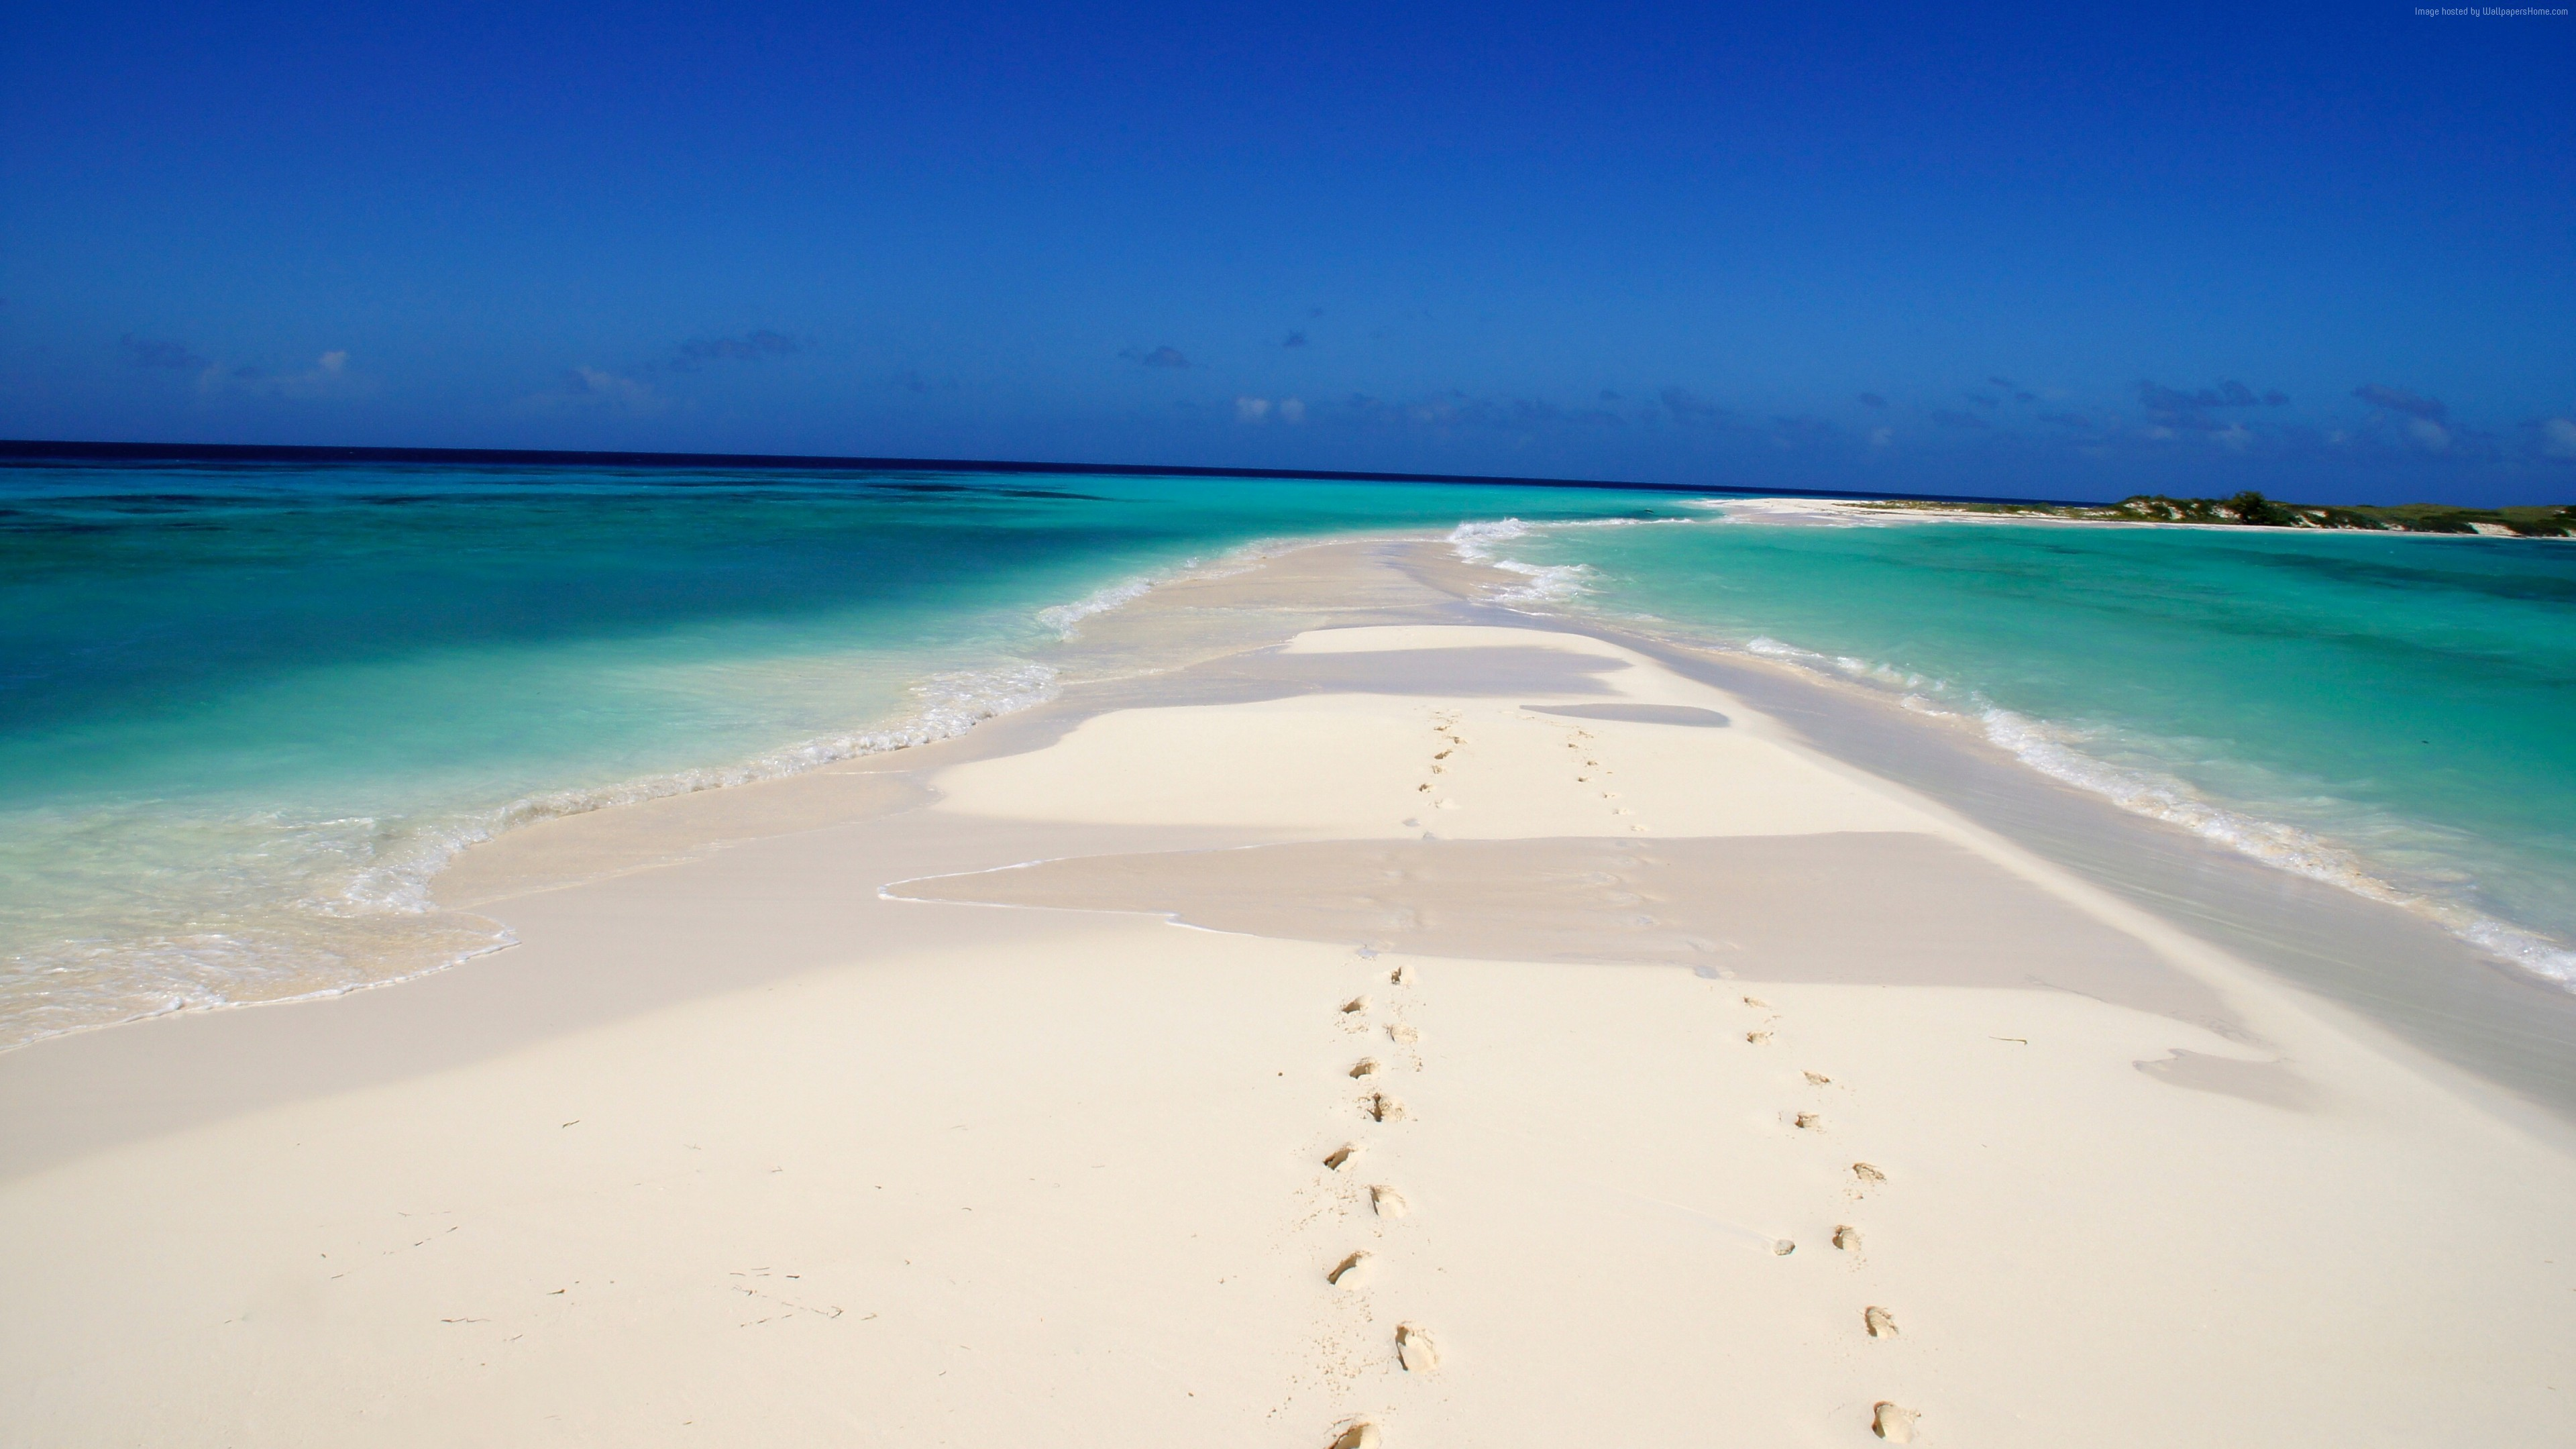 Wallpaper Cayo de Agua, Los Roques National Park, Venezuela, Best beaches of 2016, Travellers Choice Awards 2016, Travel